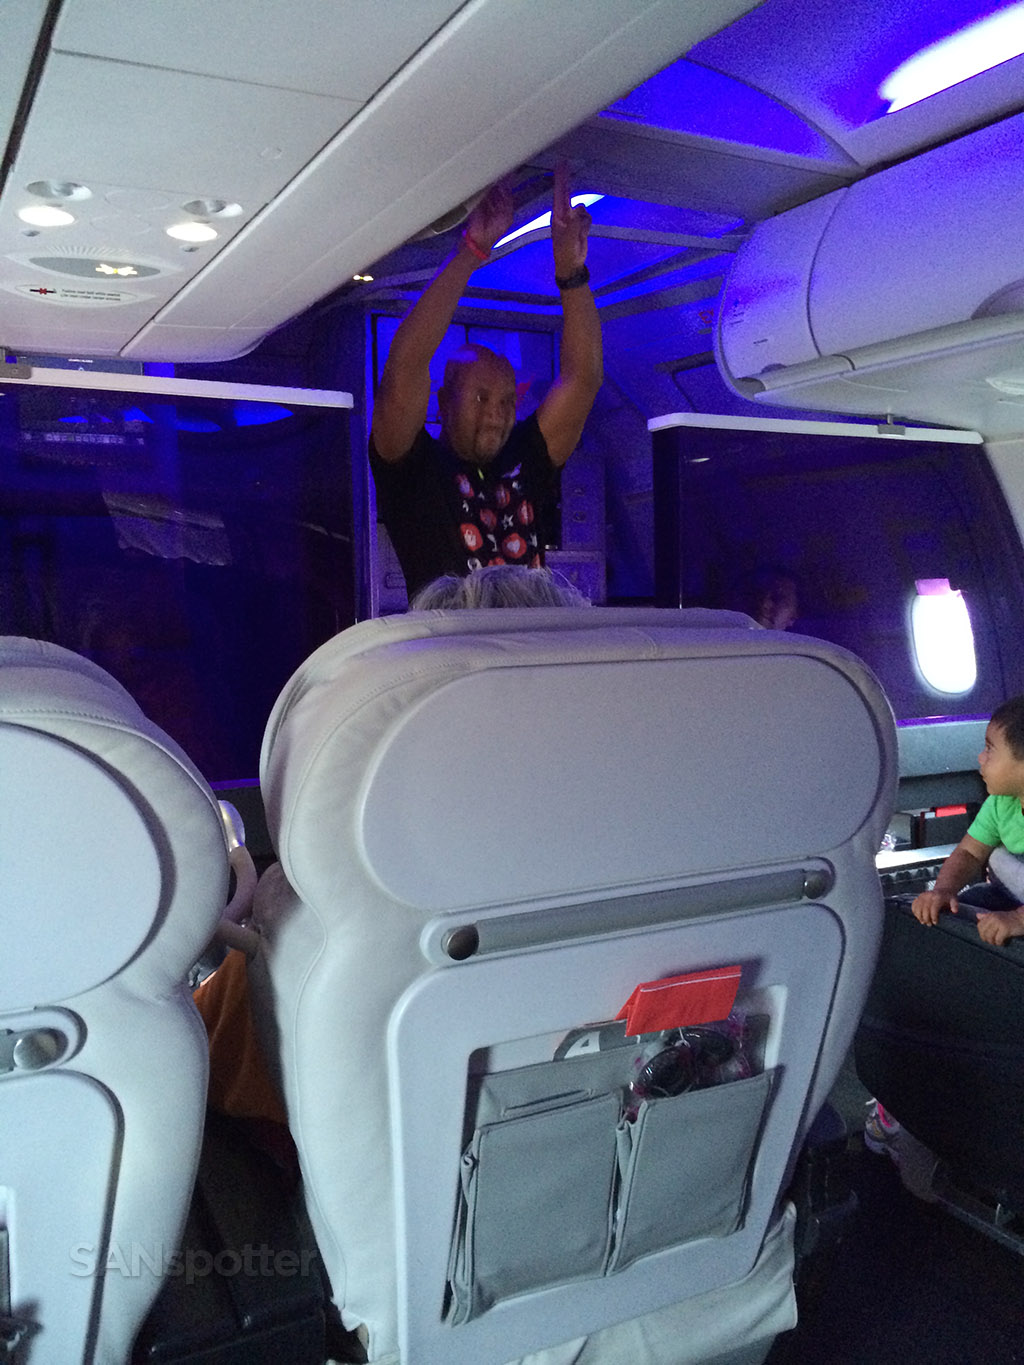 flight attendant performing the dance-based safety routine